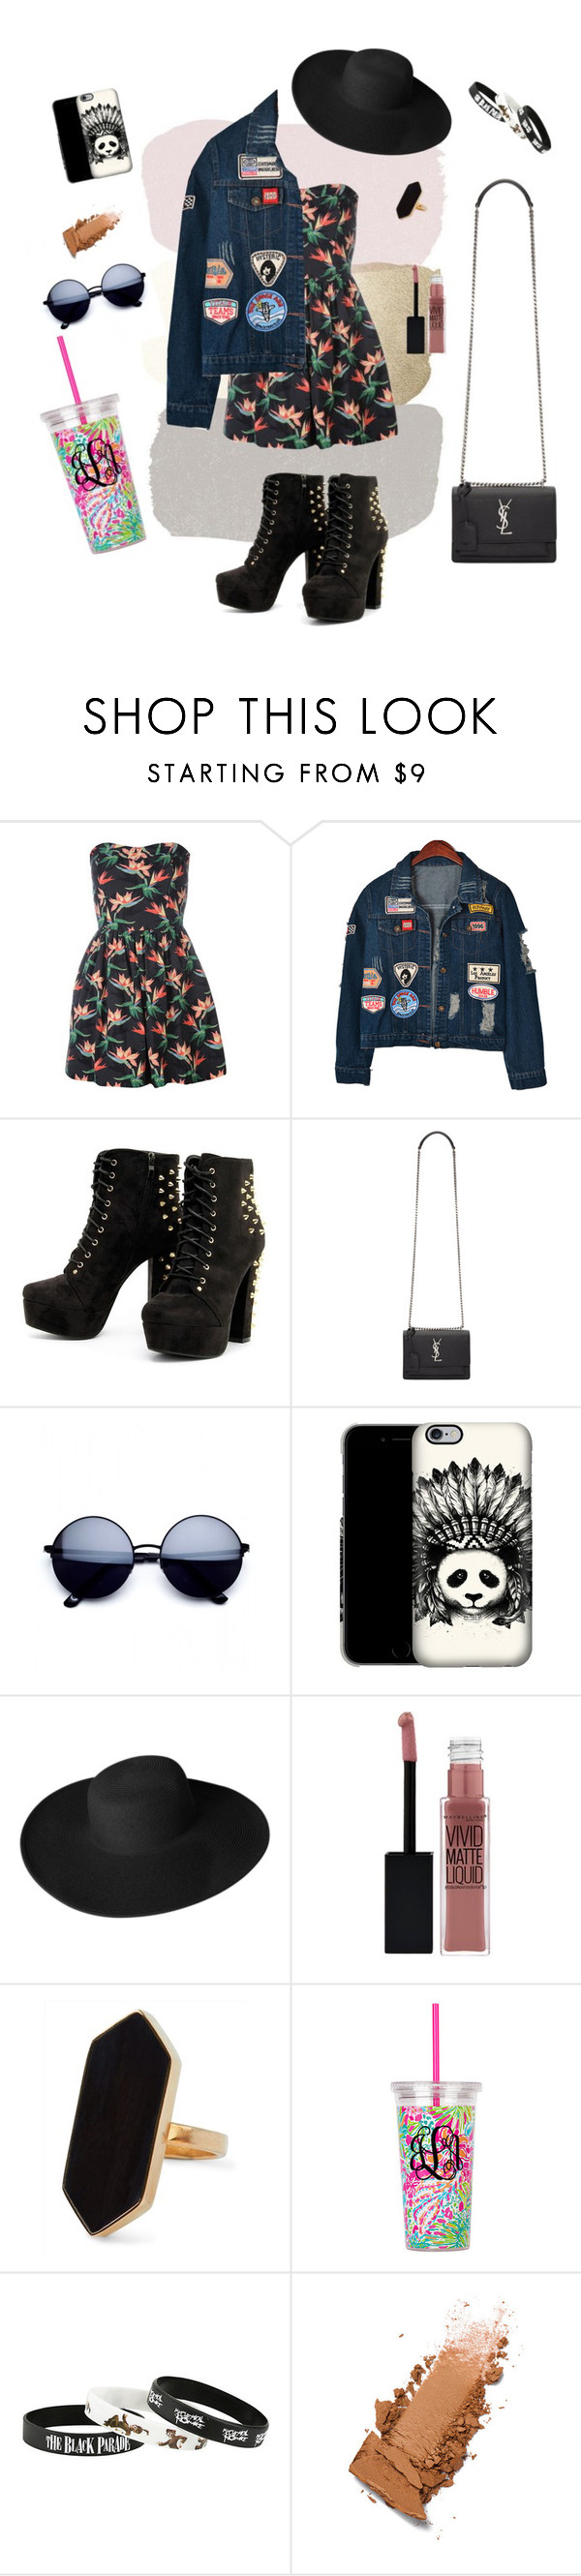 """""""Untitled #9"""" by lismansage ❤ liked on Polyvore featuring Chicnova Fashion, Yves Saint Laurent, Dorfman Pacific, Maybelline and Jaeger"""